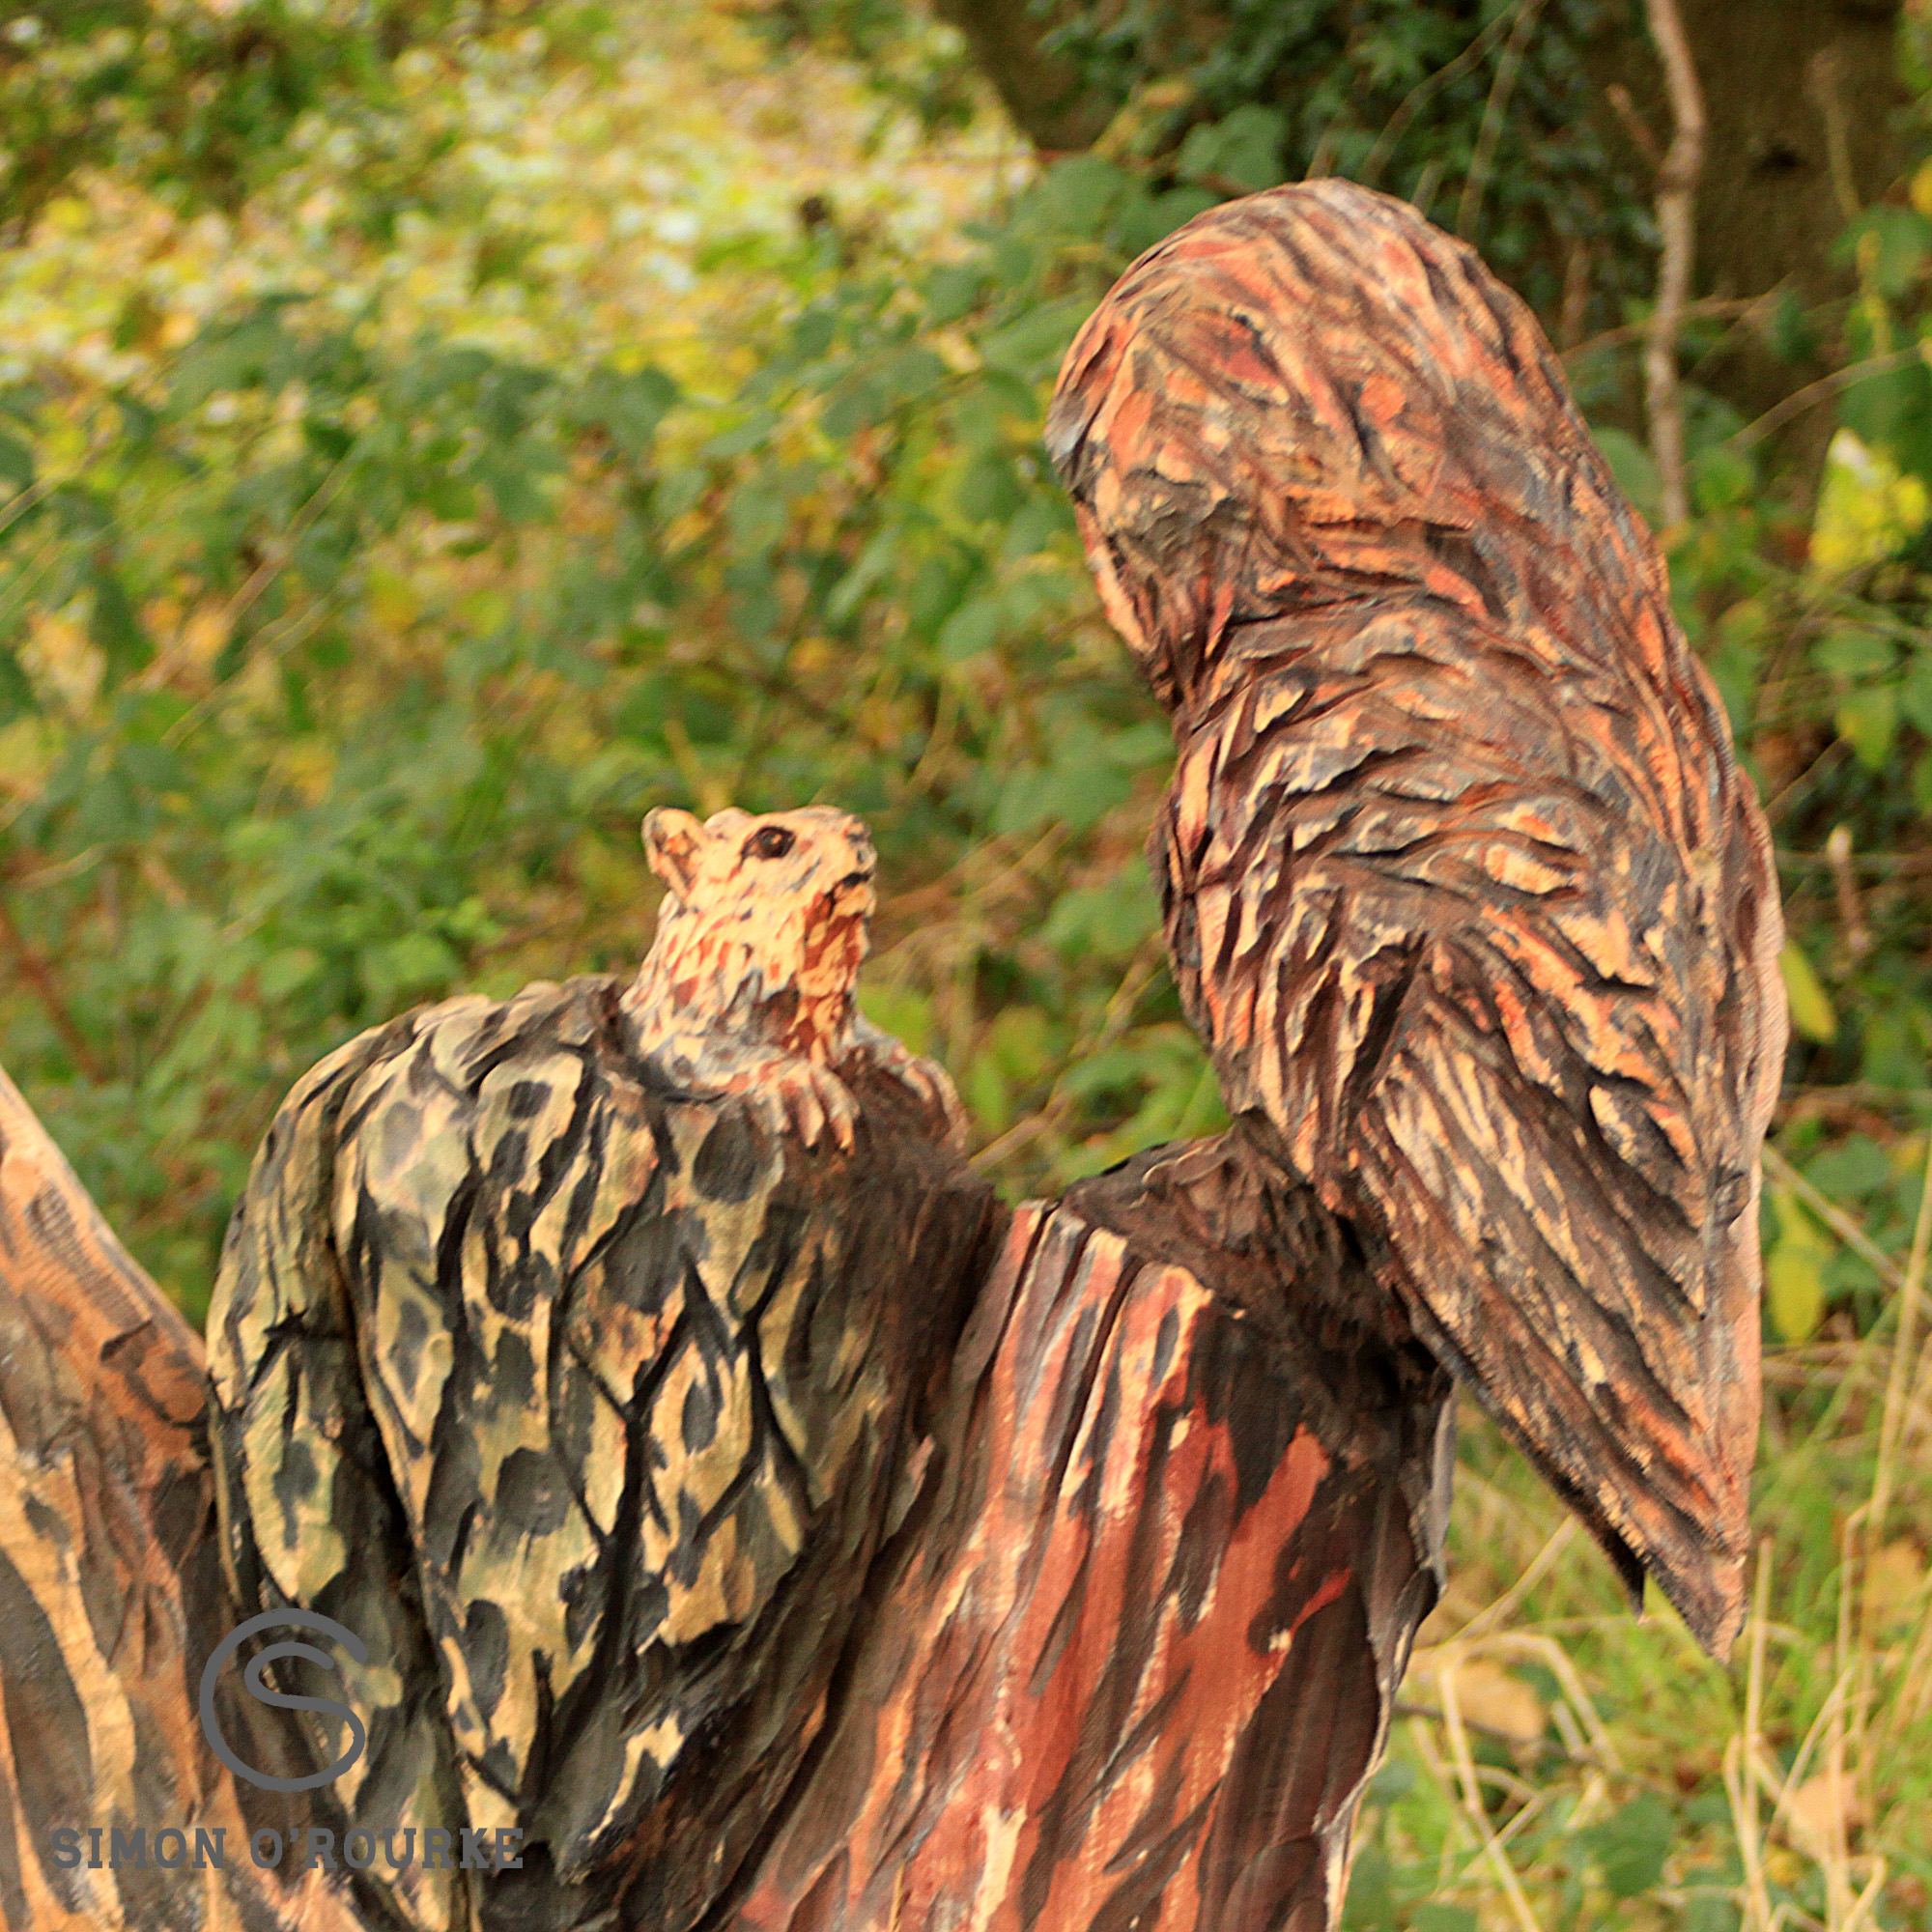 Tree carving sculpture of ruby the owl and a squirrel